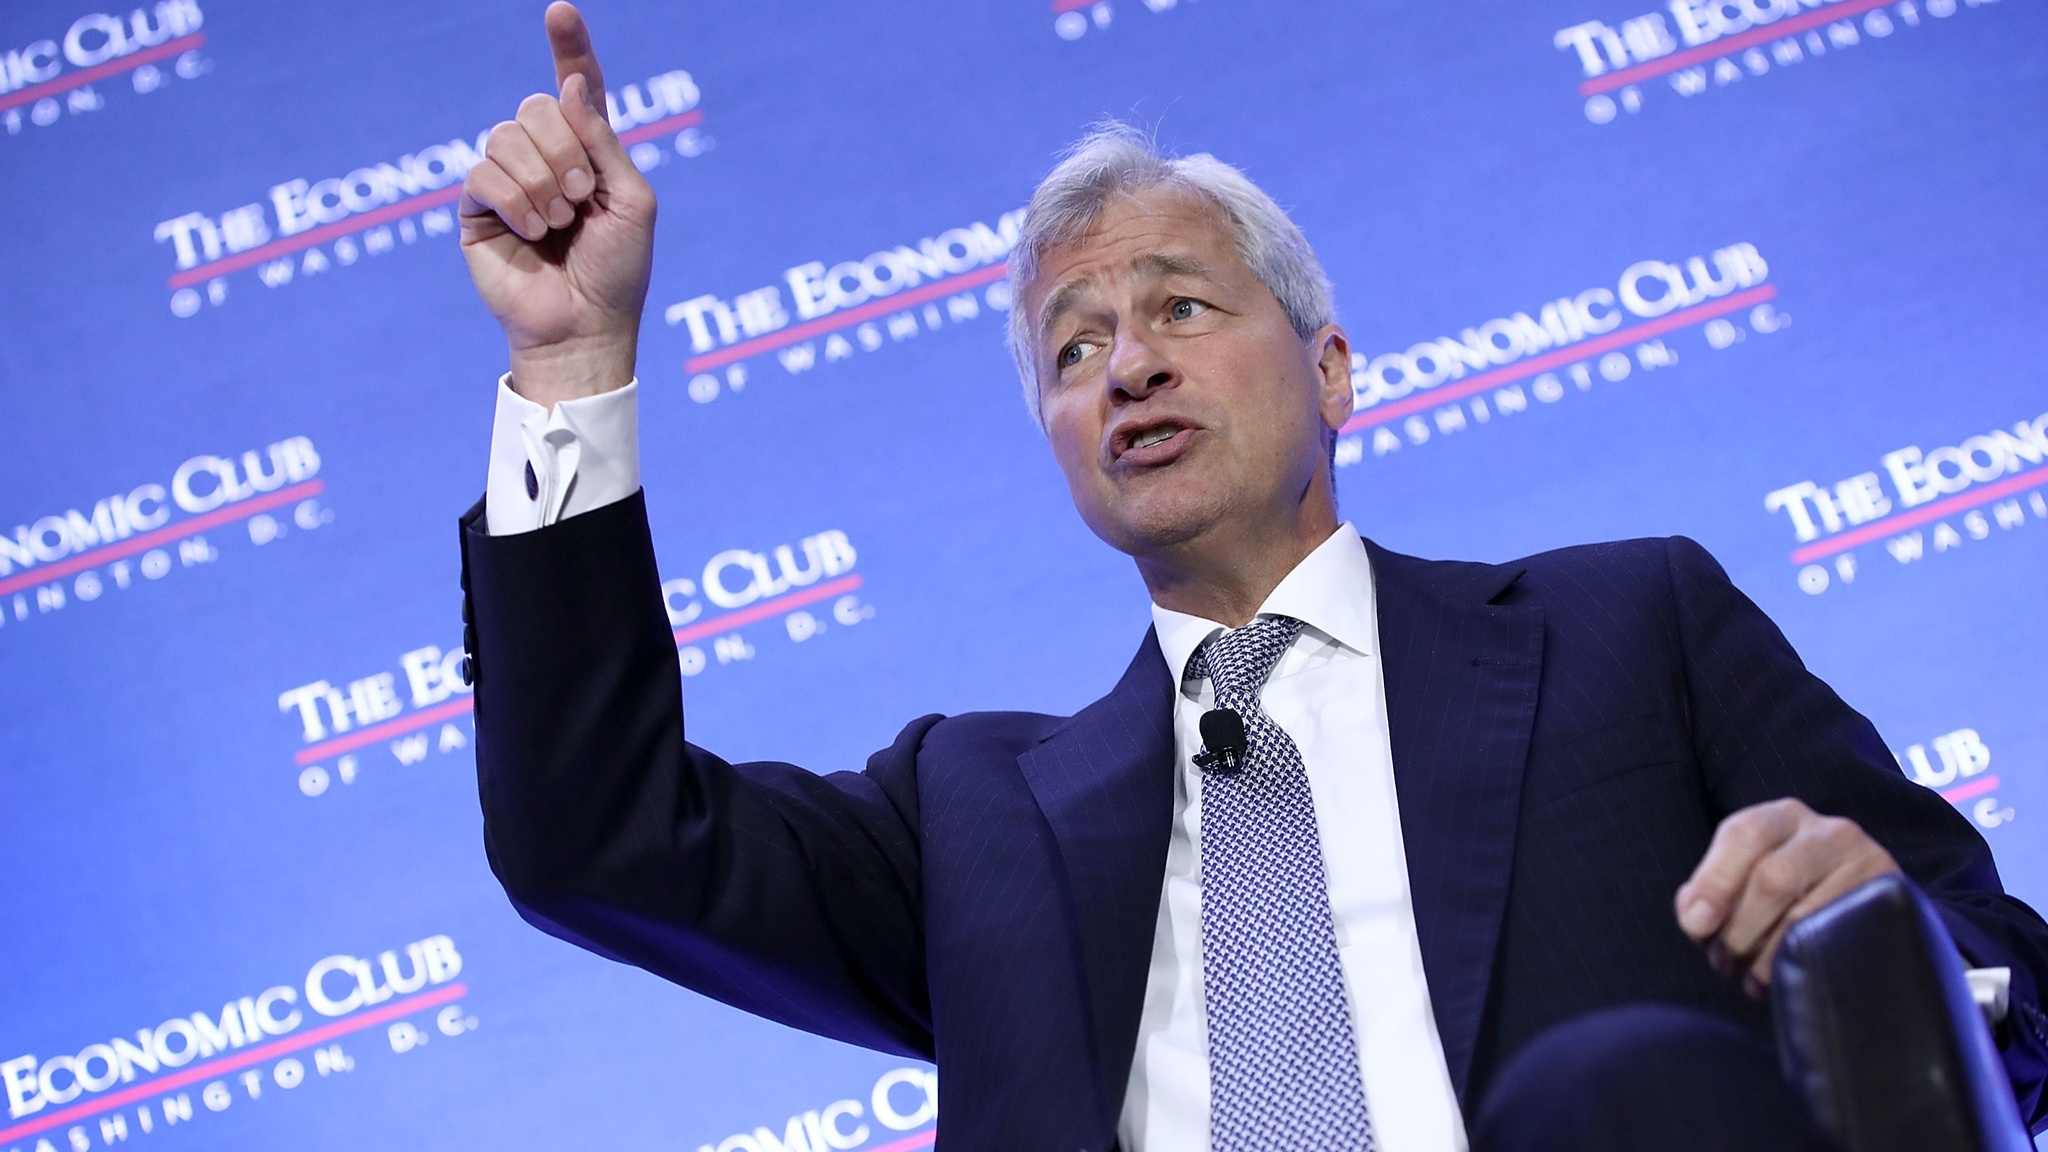 Dimon to remain JPMorgan chief for 5 more years